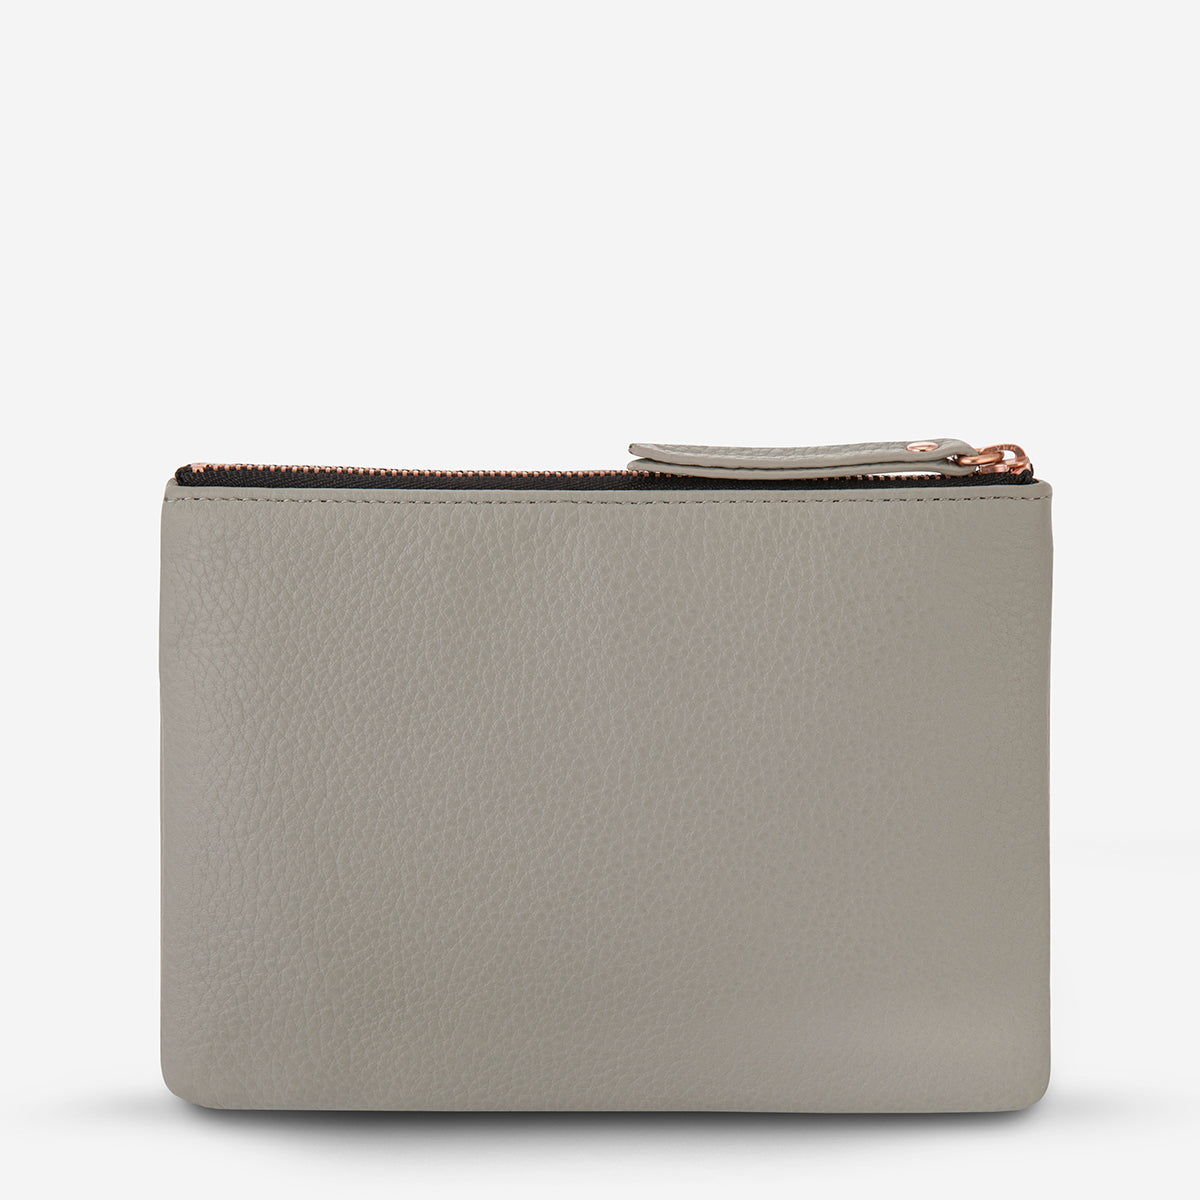 Status Anxiety Treacherous Women's Leather Pouch - Light Grey